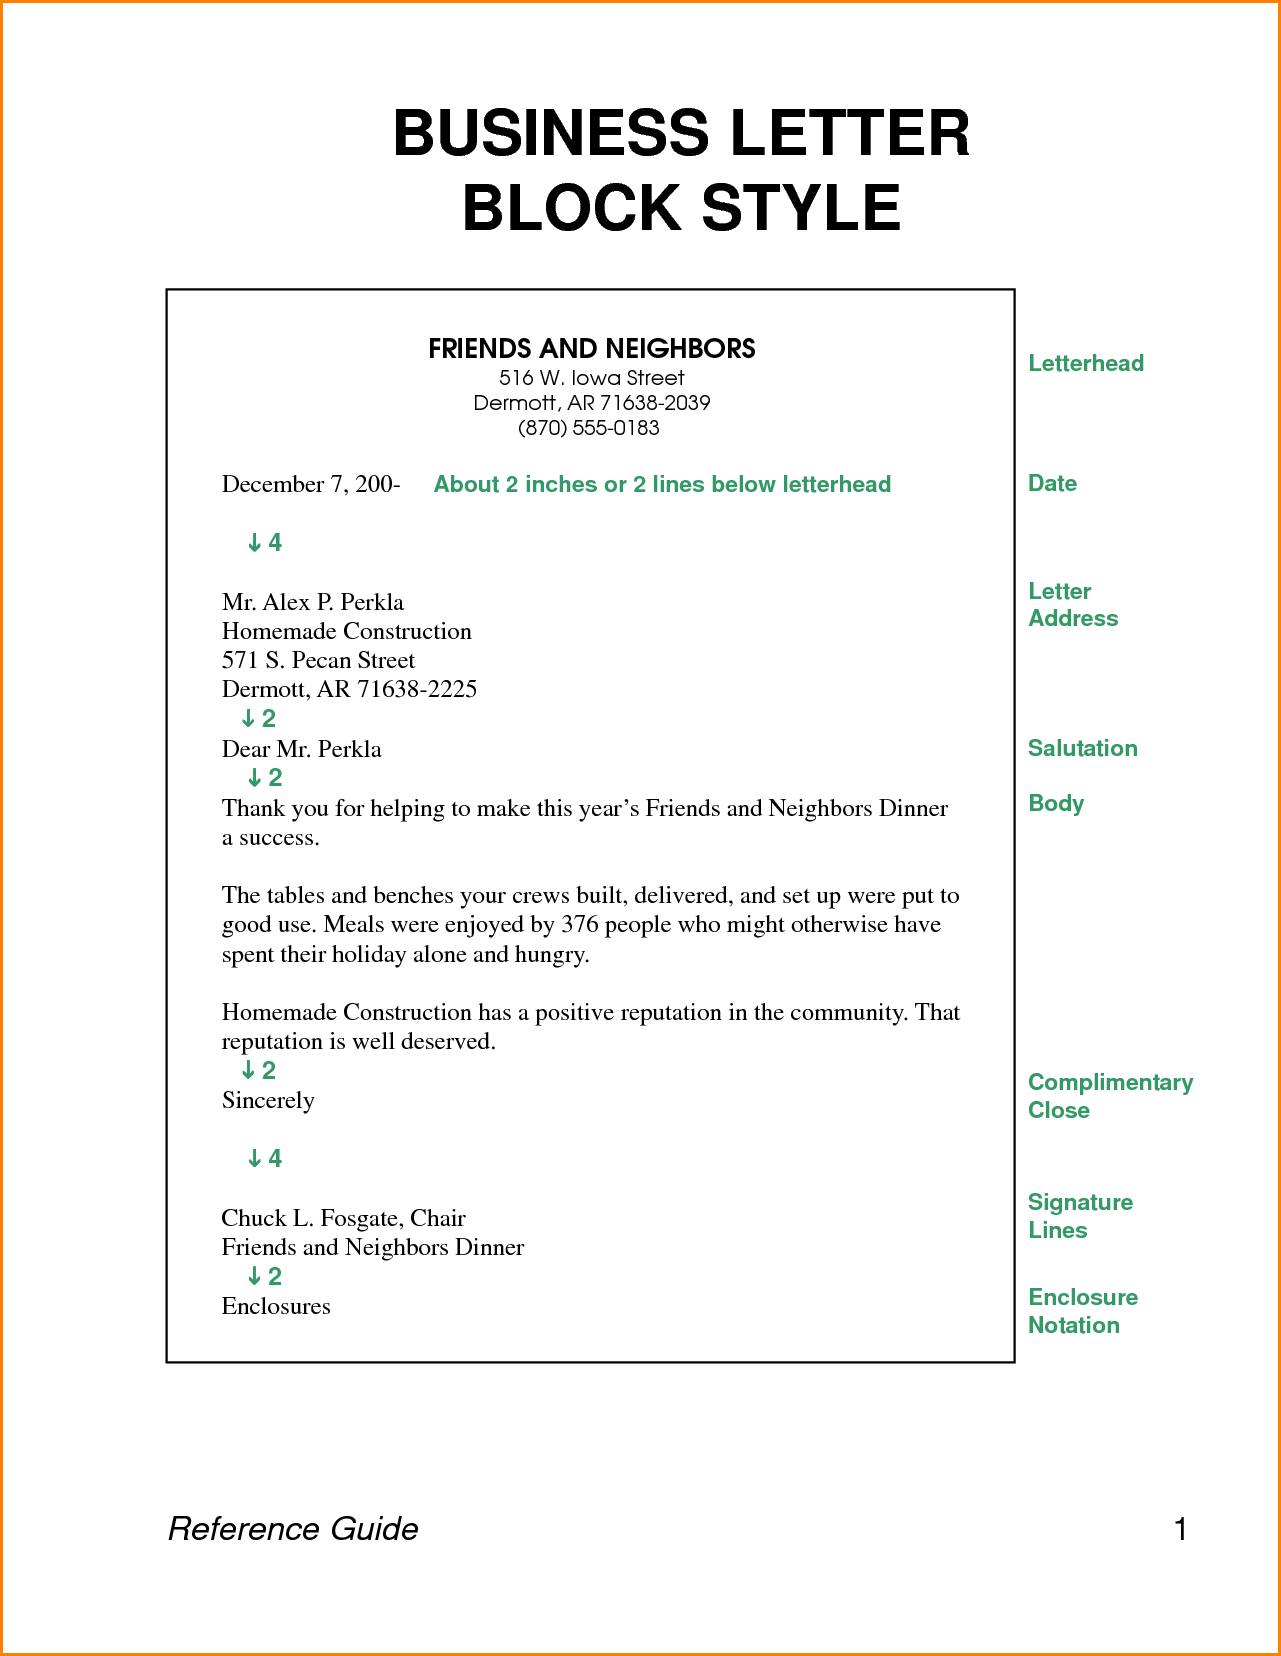 Business letter block style letters format download free documents business letter block style letters format download free documents pdf word flashek Gallery